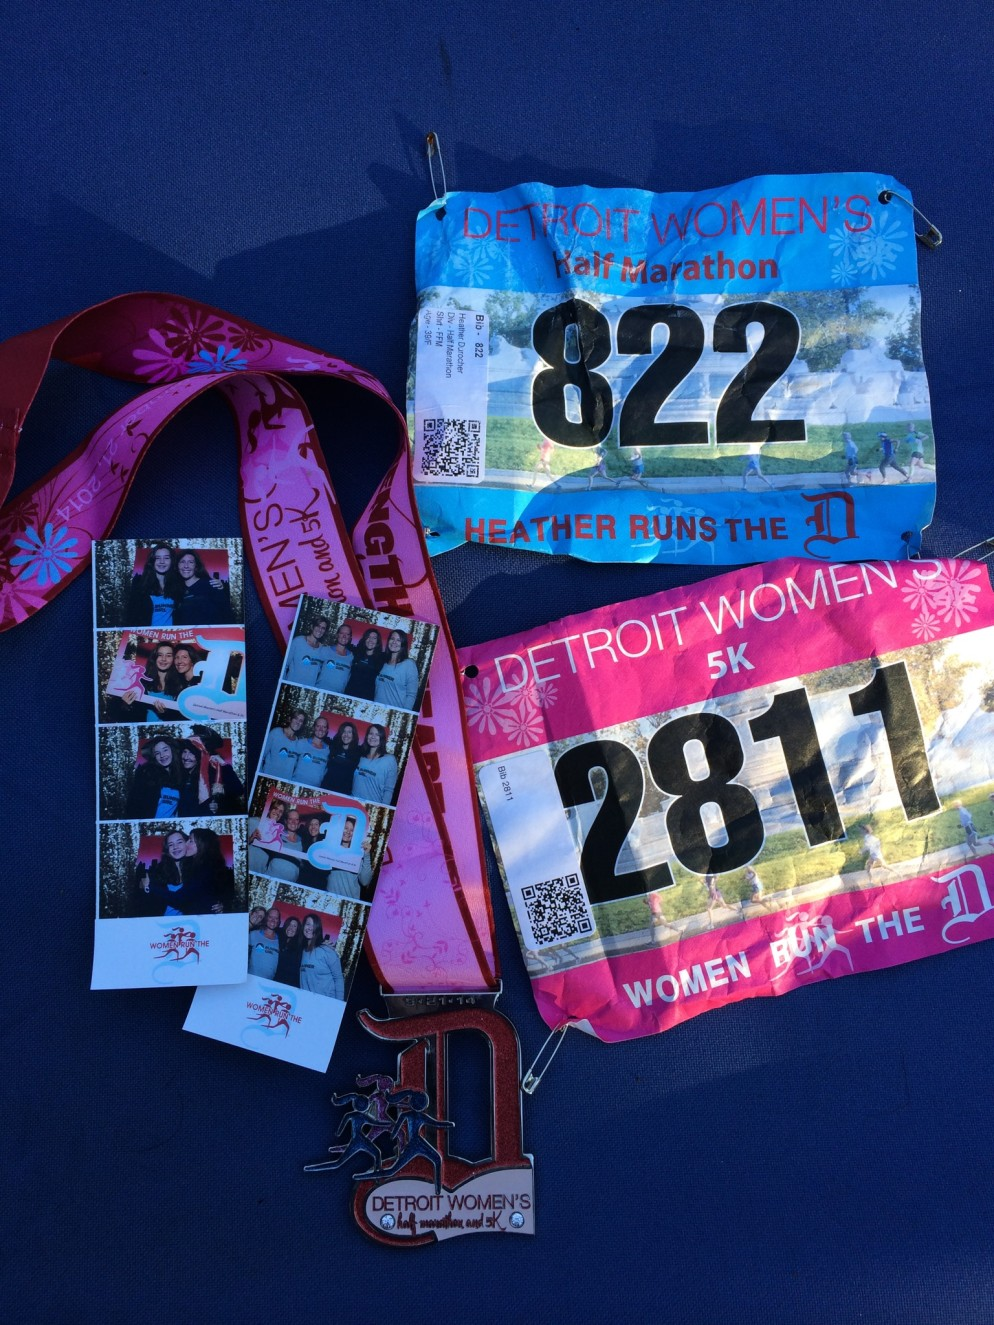 Momentos from our weekend in Detroit. We had so much fun expo'ing and running the Detroit Women's Half Marathon & 5K.